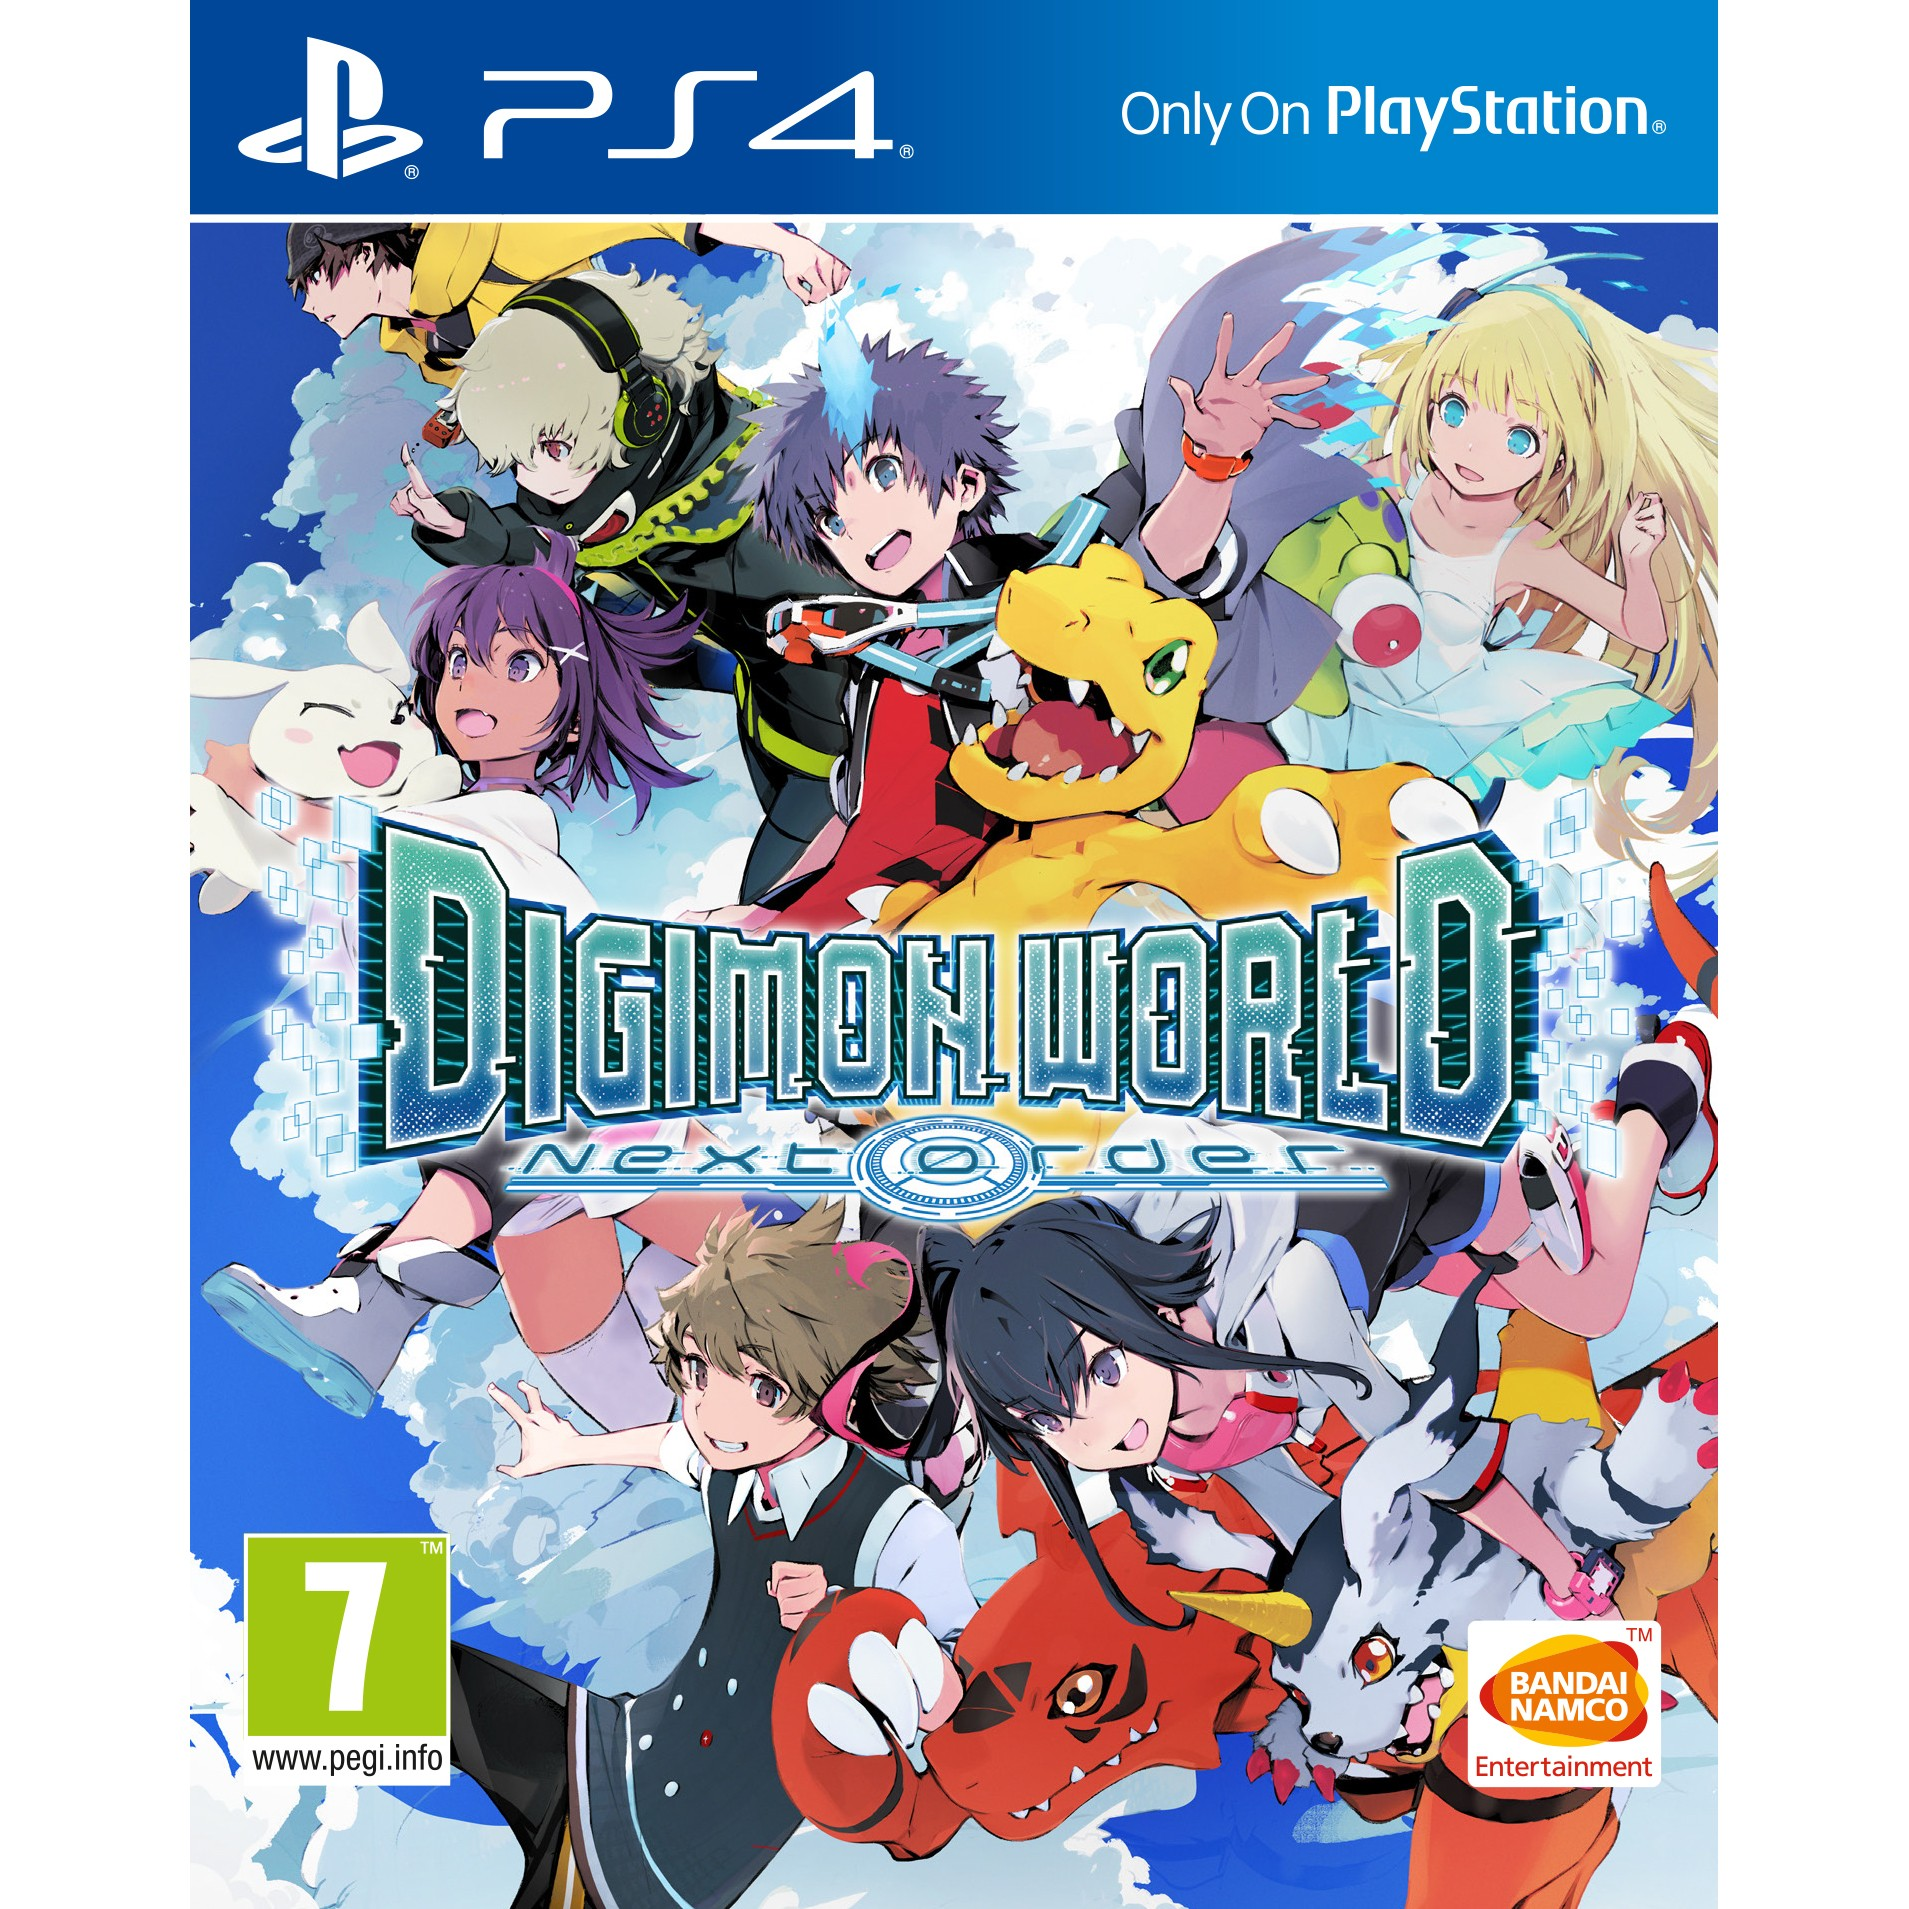 PS4DIGIMONNO : Digimon World: Next Order (PS4)